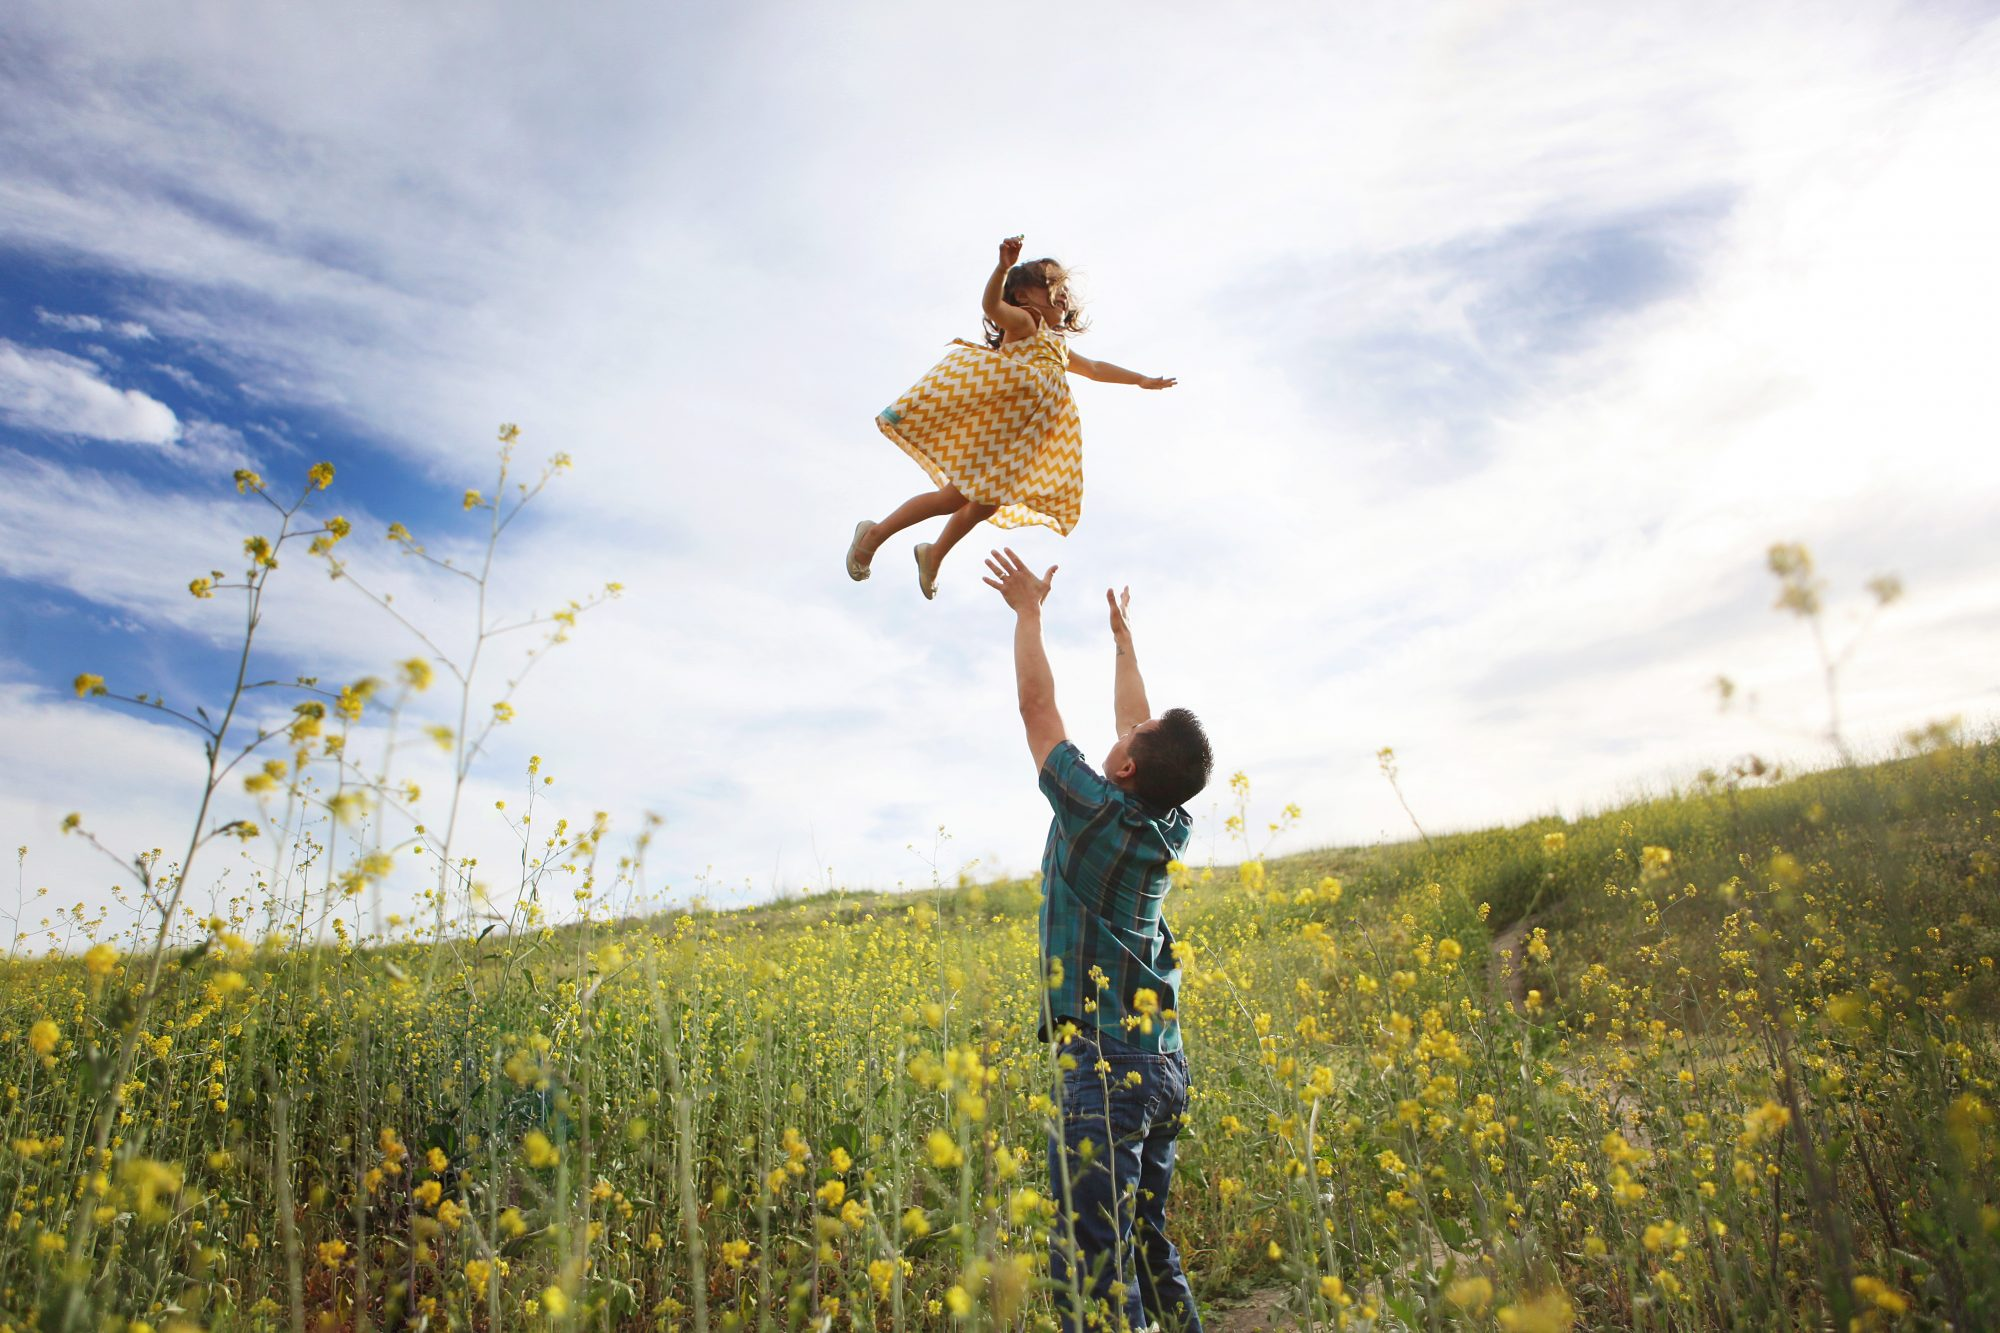 Dad and Daughter in a field